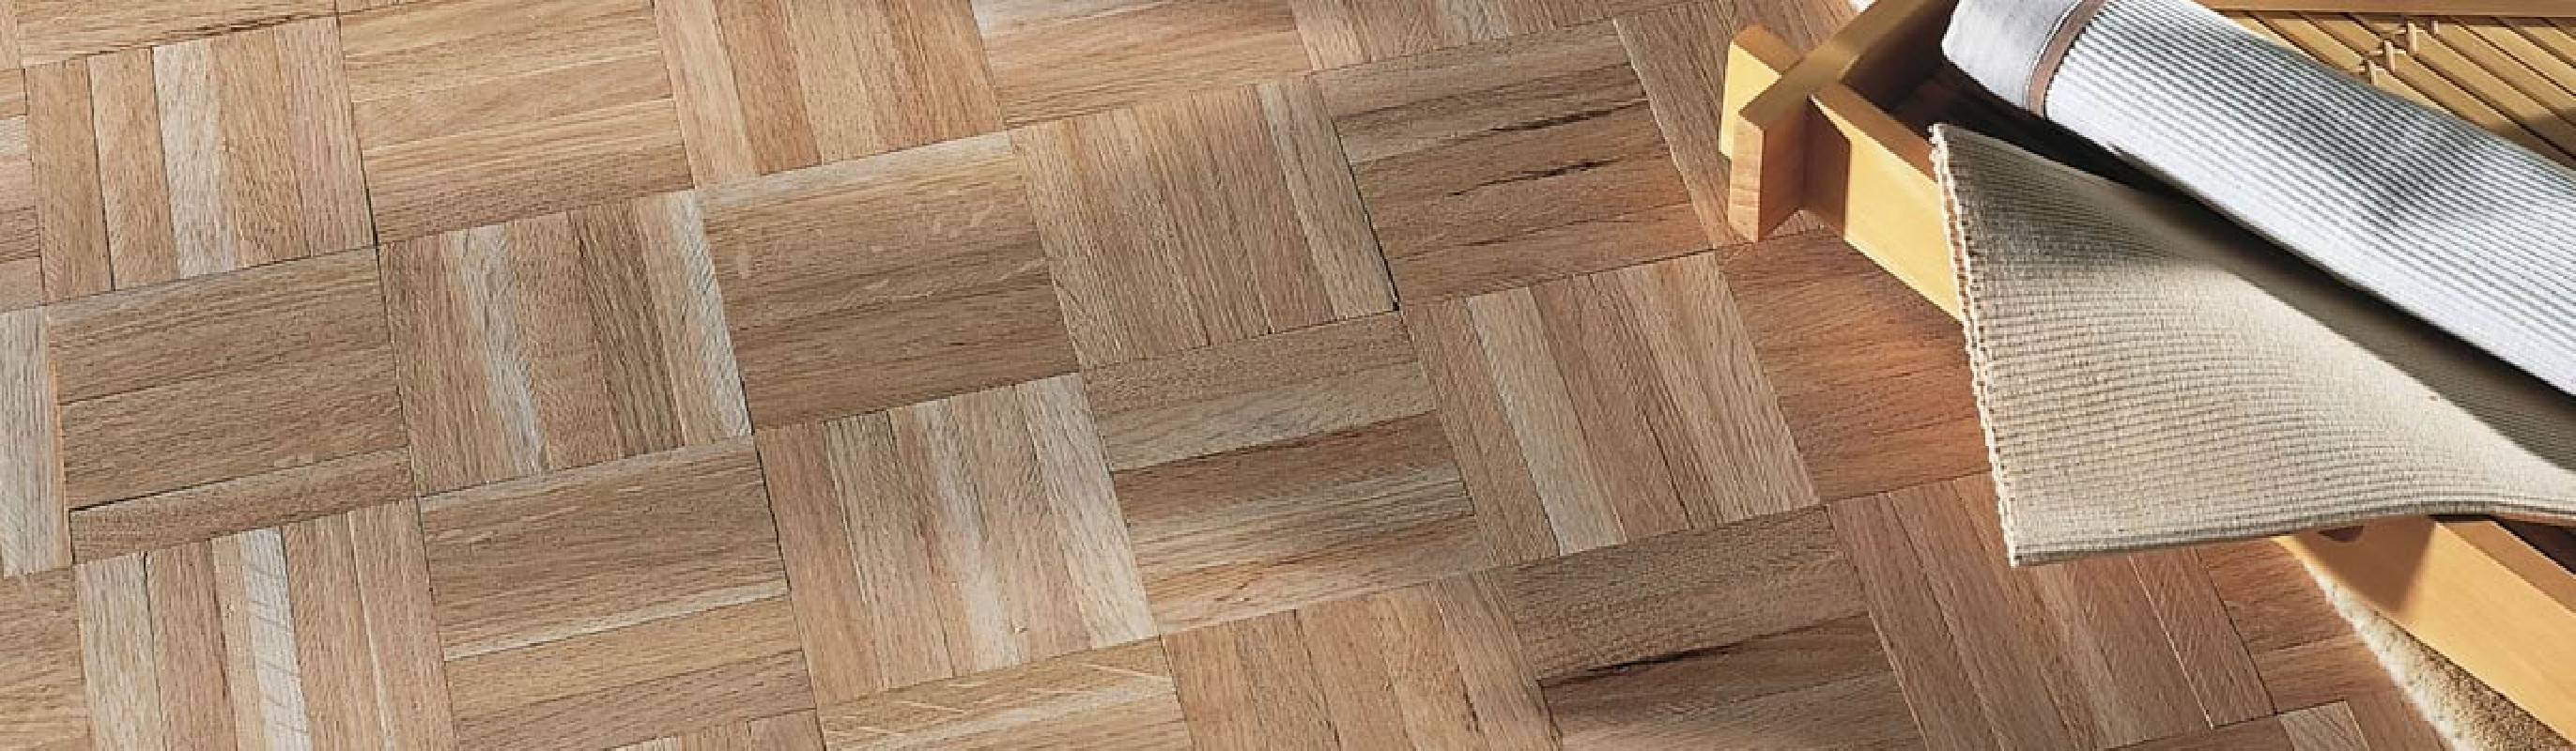 parquet massif mosaique simple parquet massif chne monaco naturel with parquet massif mosaique. Black Bedroom Furniture Sets. Home Design Ideas